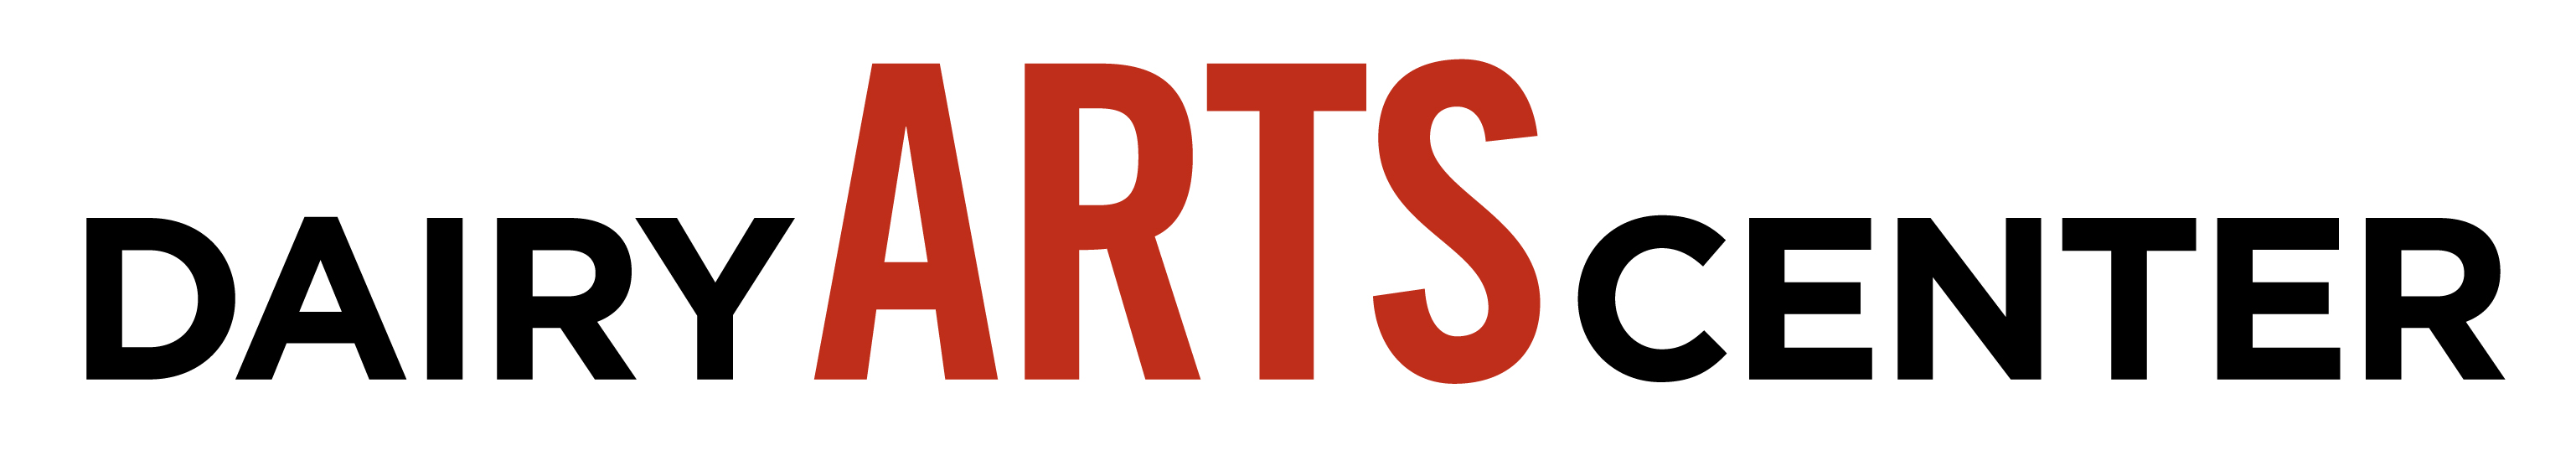 r3-DairyArtsCenter_Logo Color